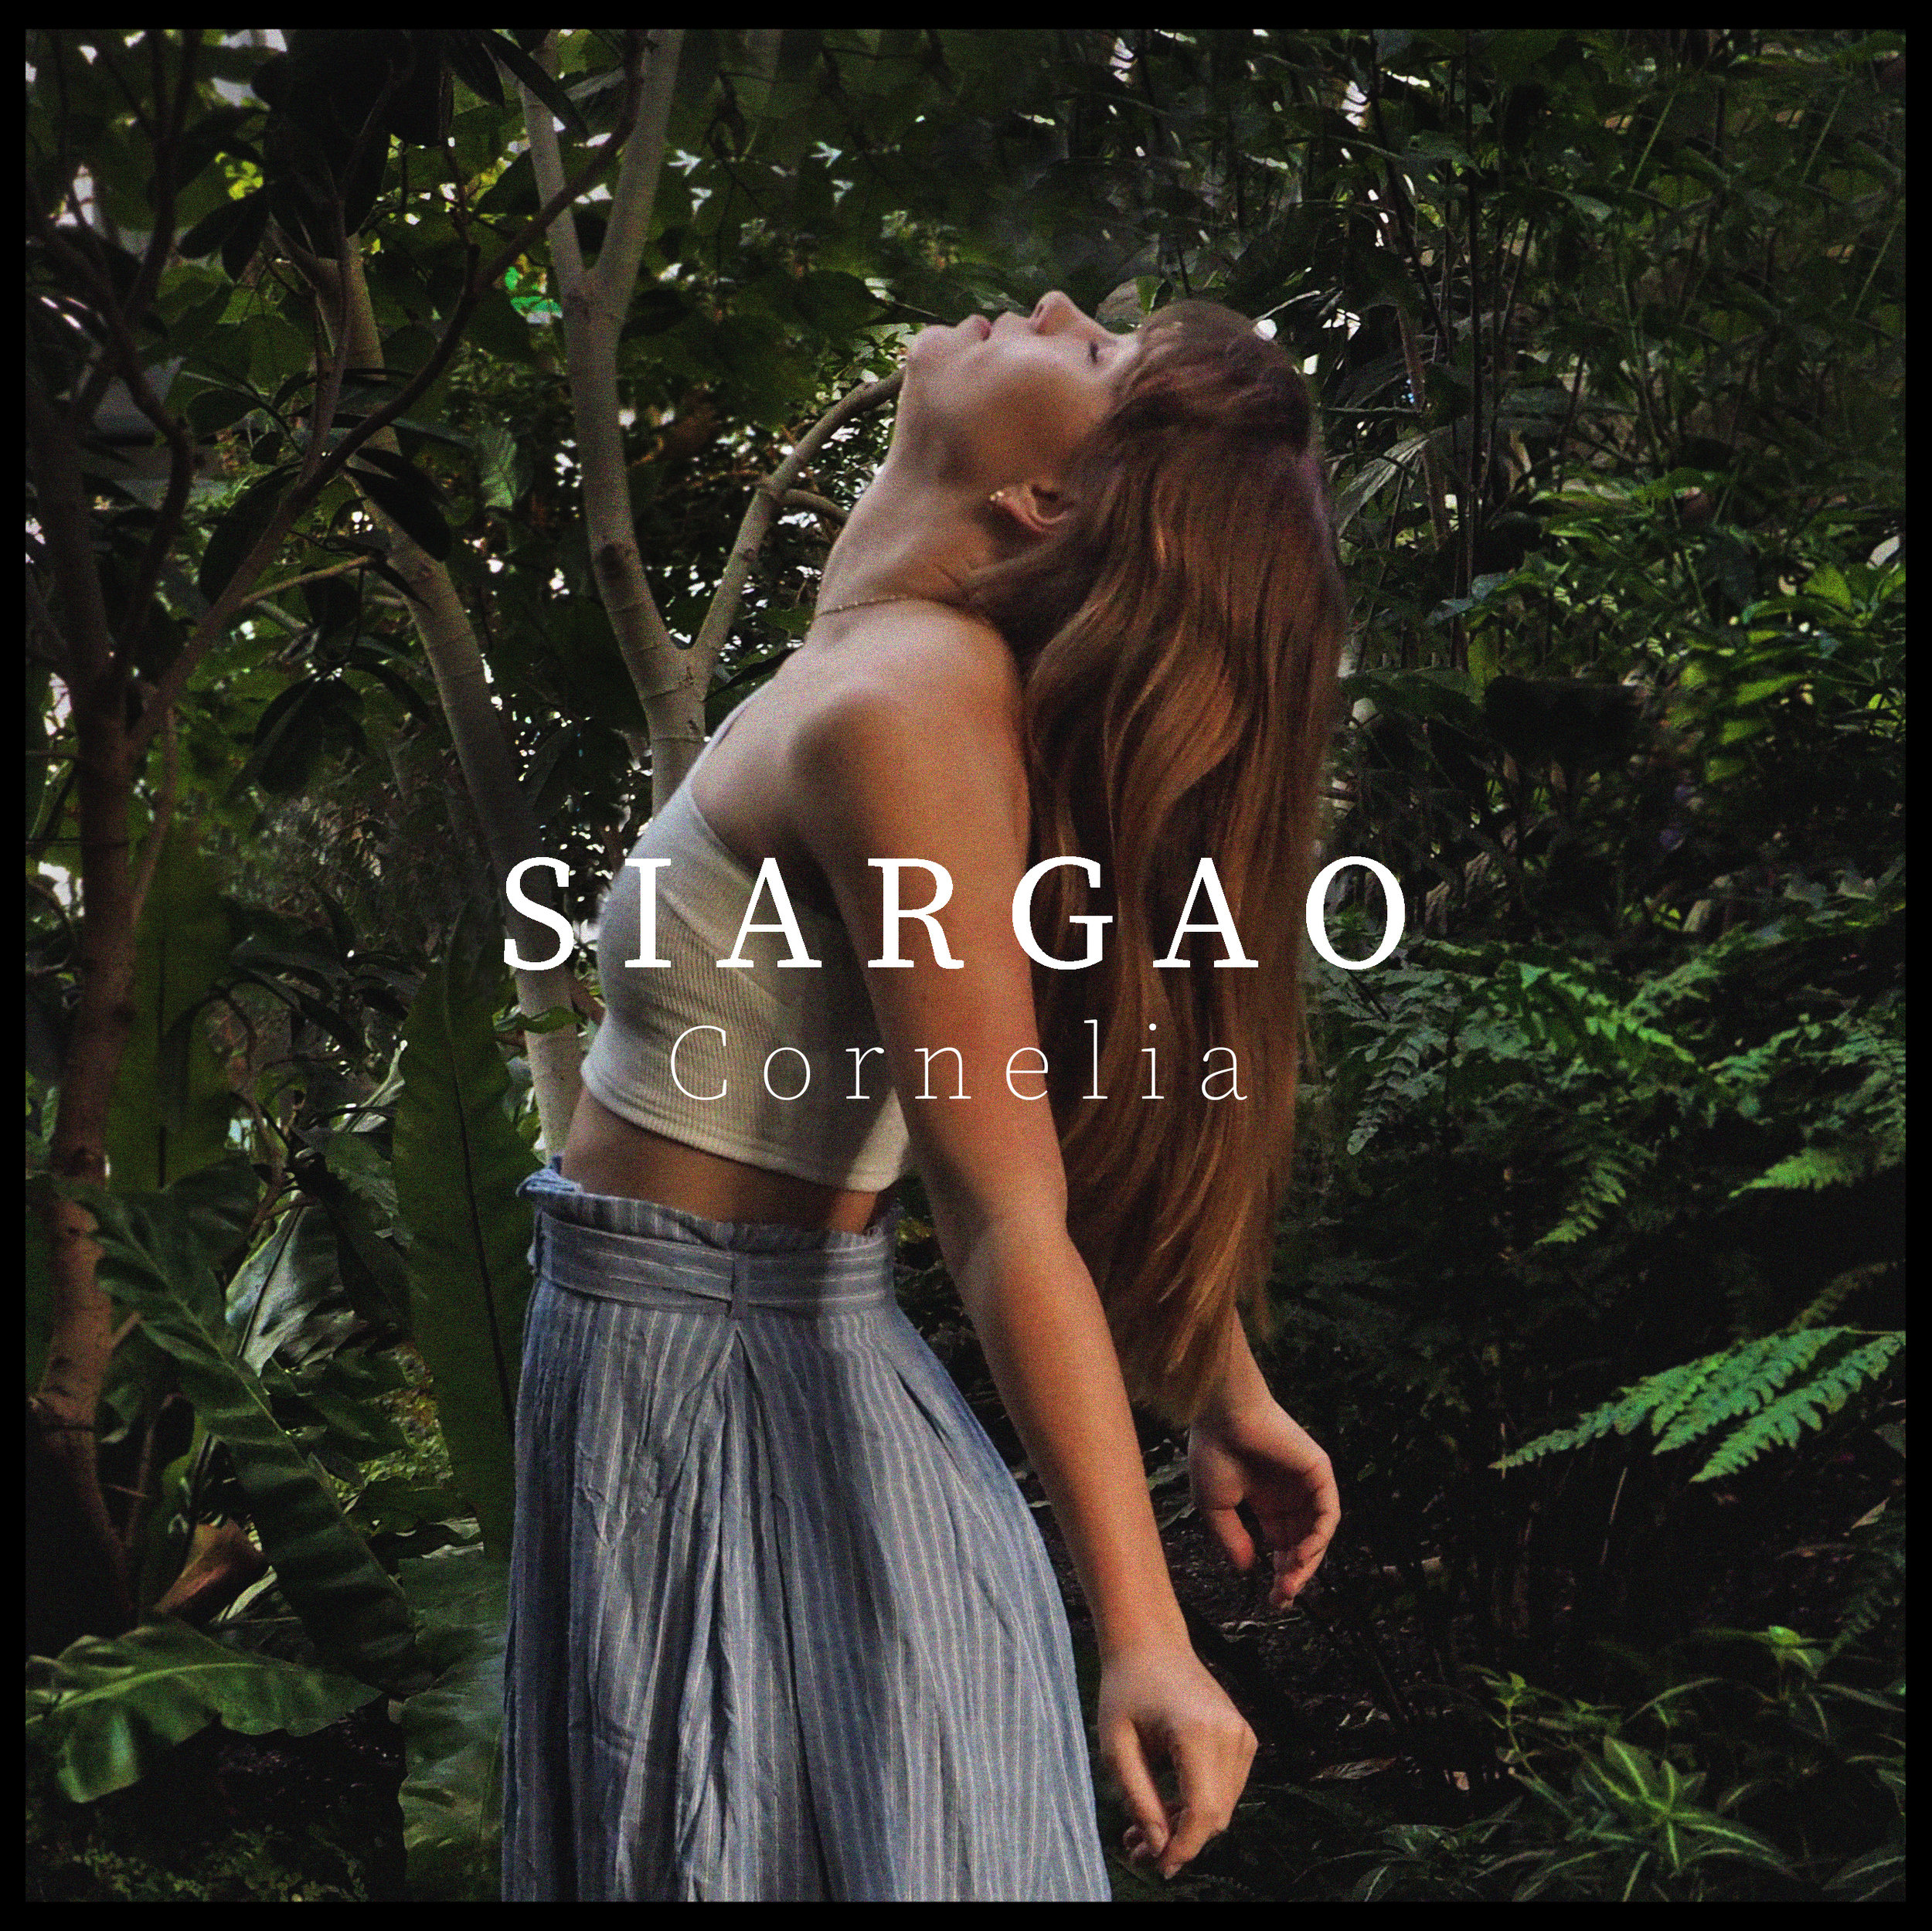 New Single Out Now - It is her very first release and it features a soothing guitar picking pattern, harmonised backing vocals and a dreamy string section. Siargao is the name of a remote island in the Philippines.